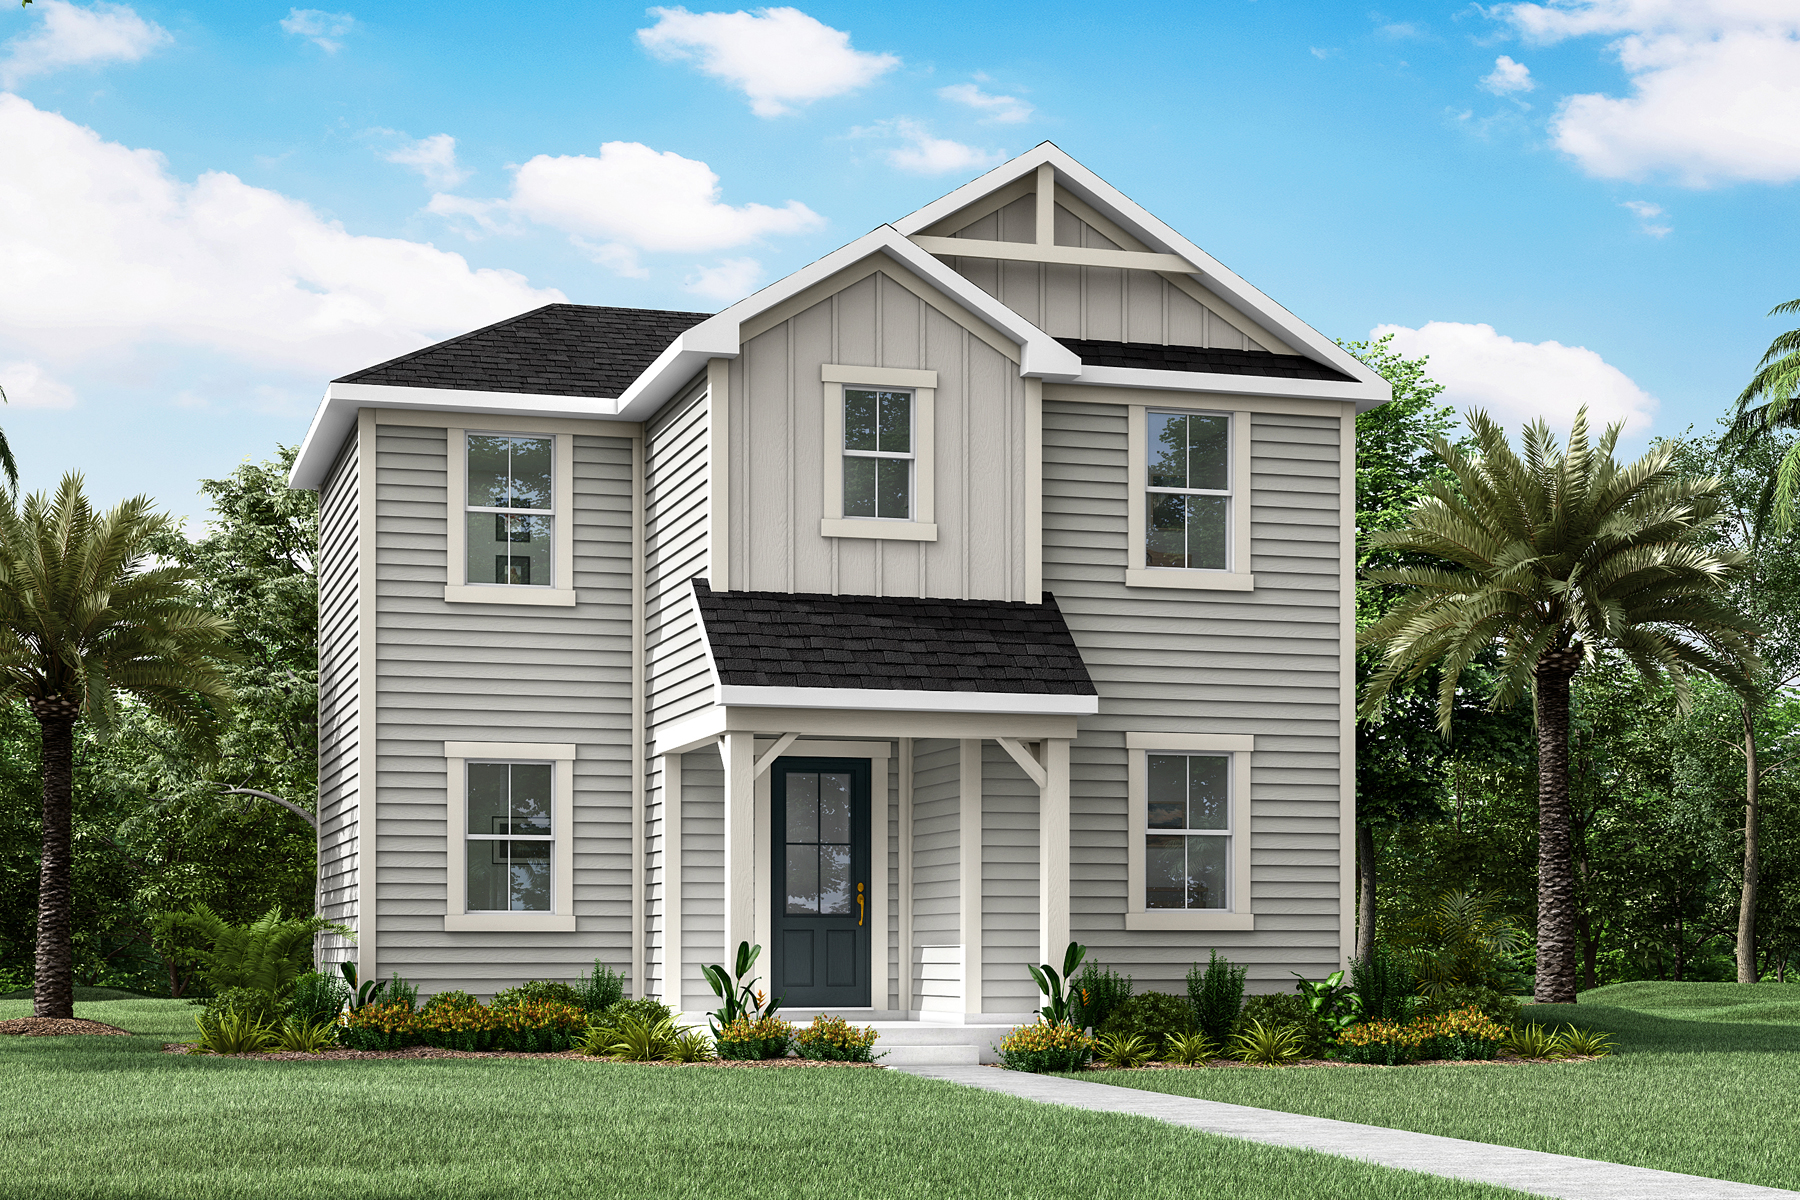 Lacey Plan JAX_Wildlight_Lacey_Farmhouse at Forest Park at Wildlight in Yulee Florida by Mattamy Homes